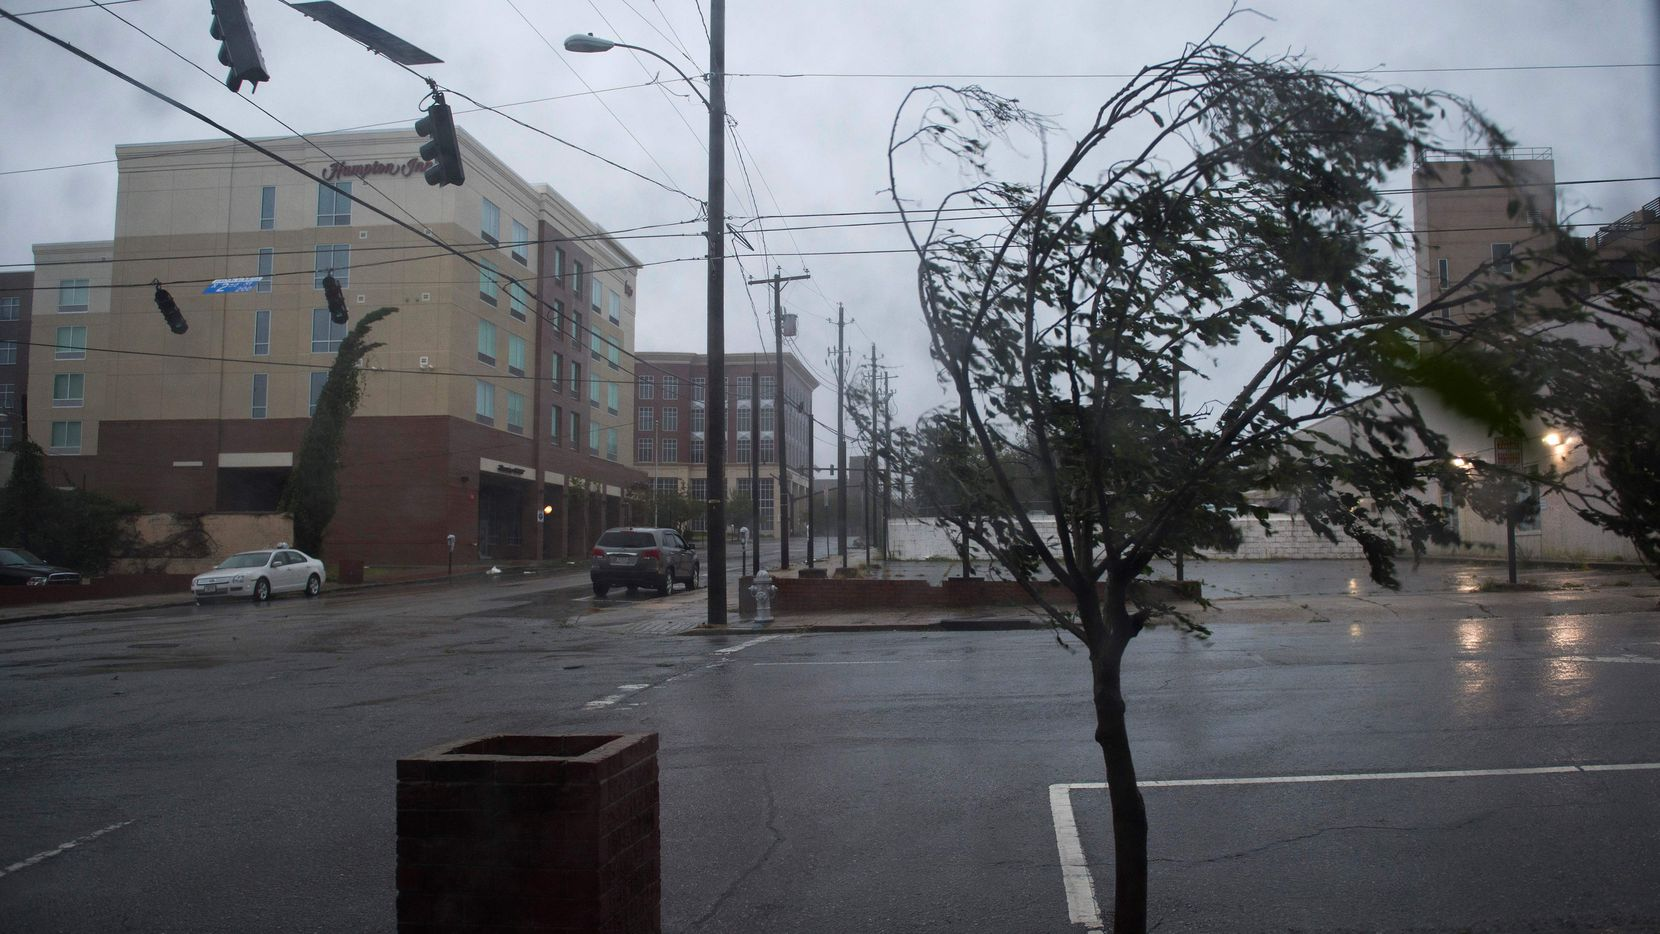 A tree in Wilmington, North Carolina, bends under heavy rain and wind during Hurricane Florence Friday.